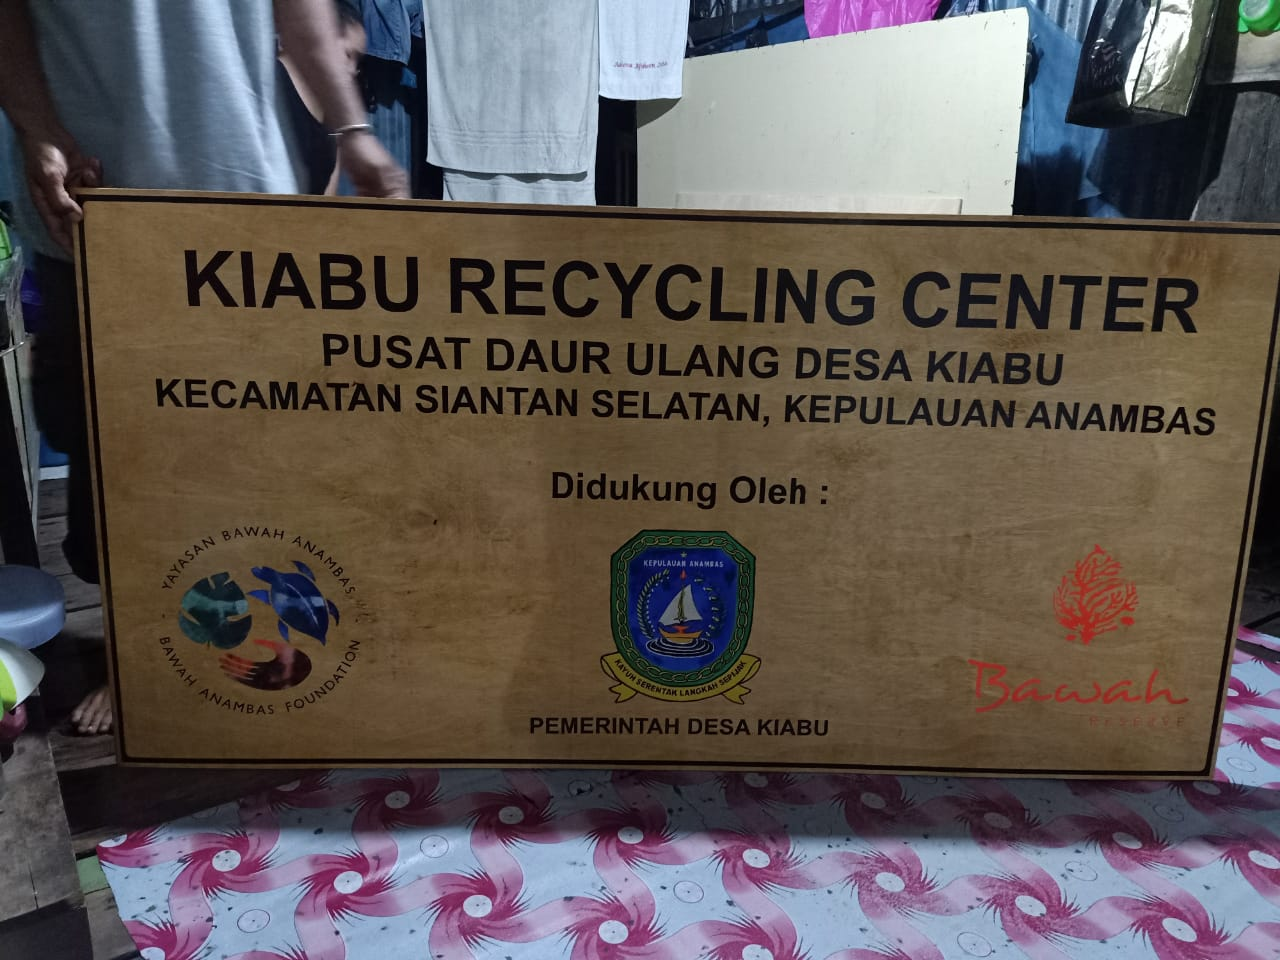 Recycling Center signage